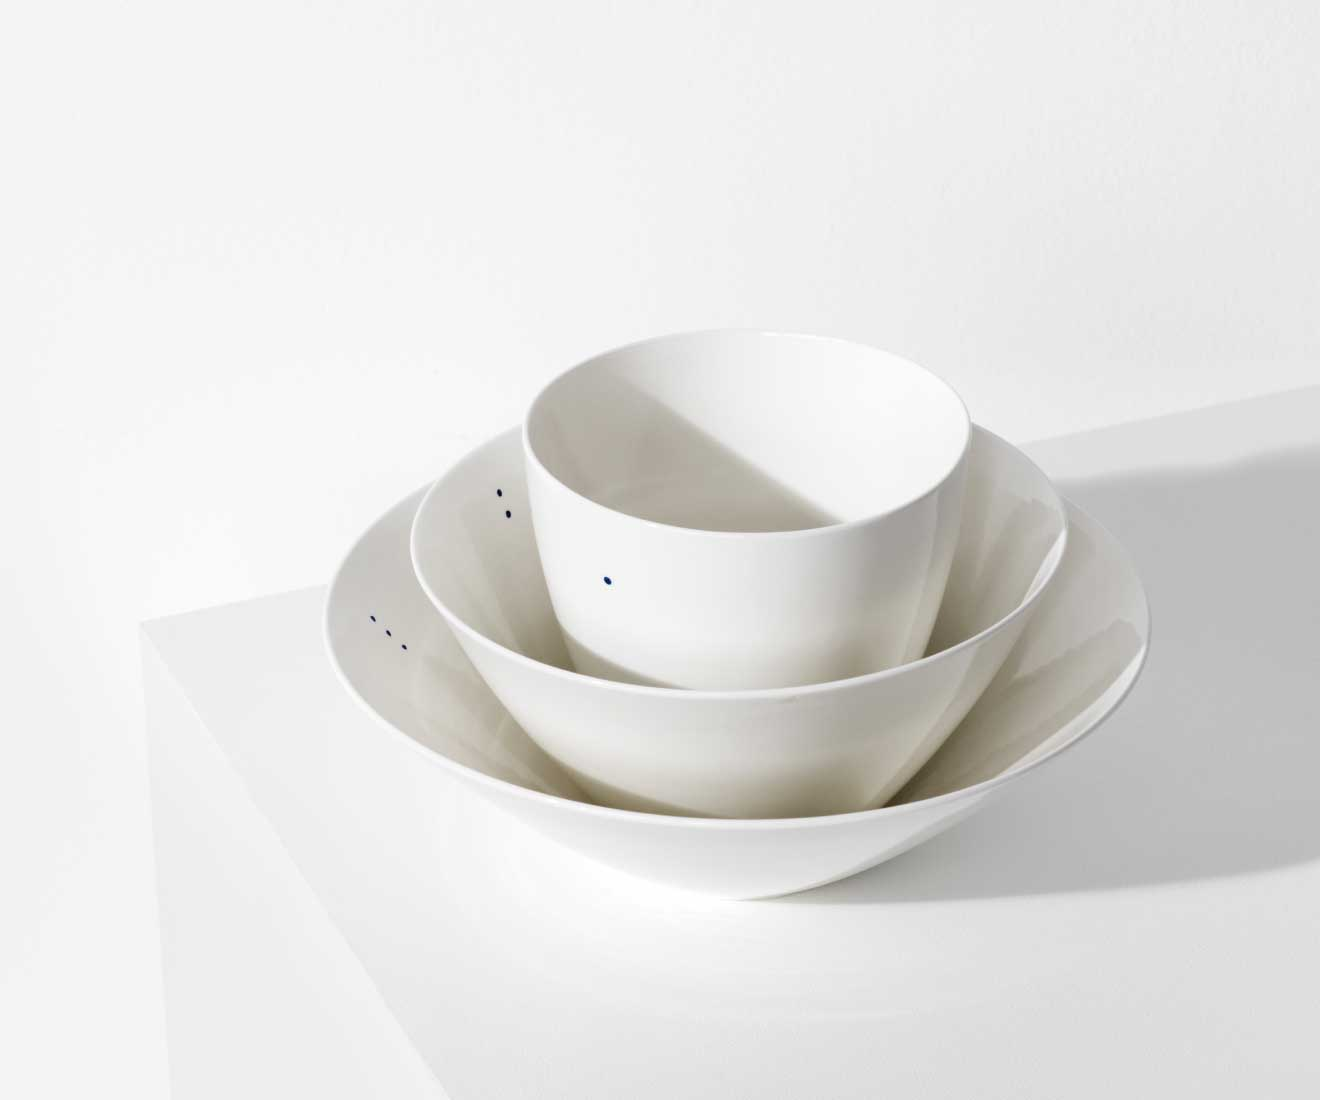 Motarasu Products - Shiro bowls in 2 sizes, 1-2-3 dots by Stilleben